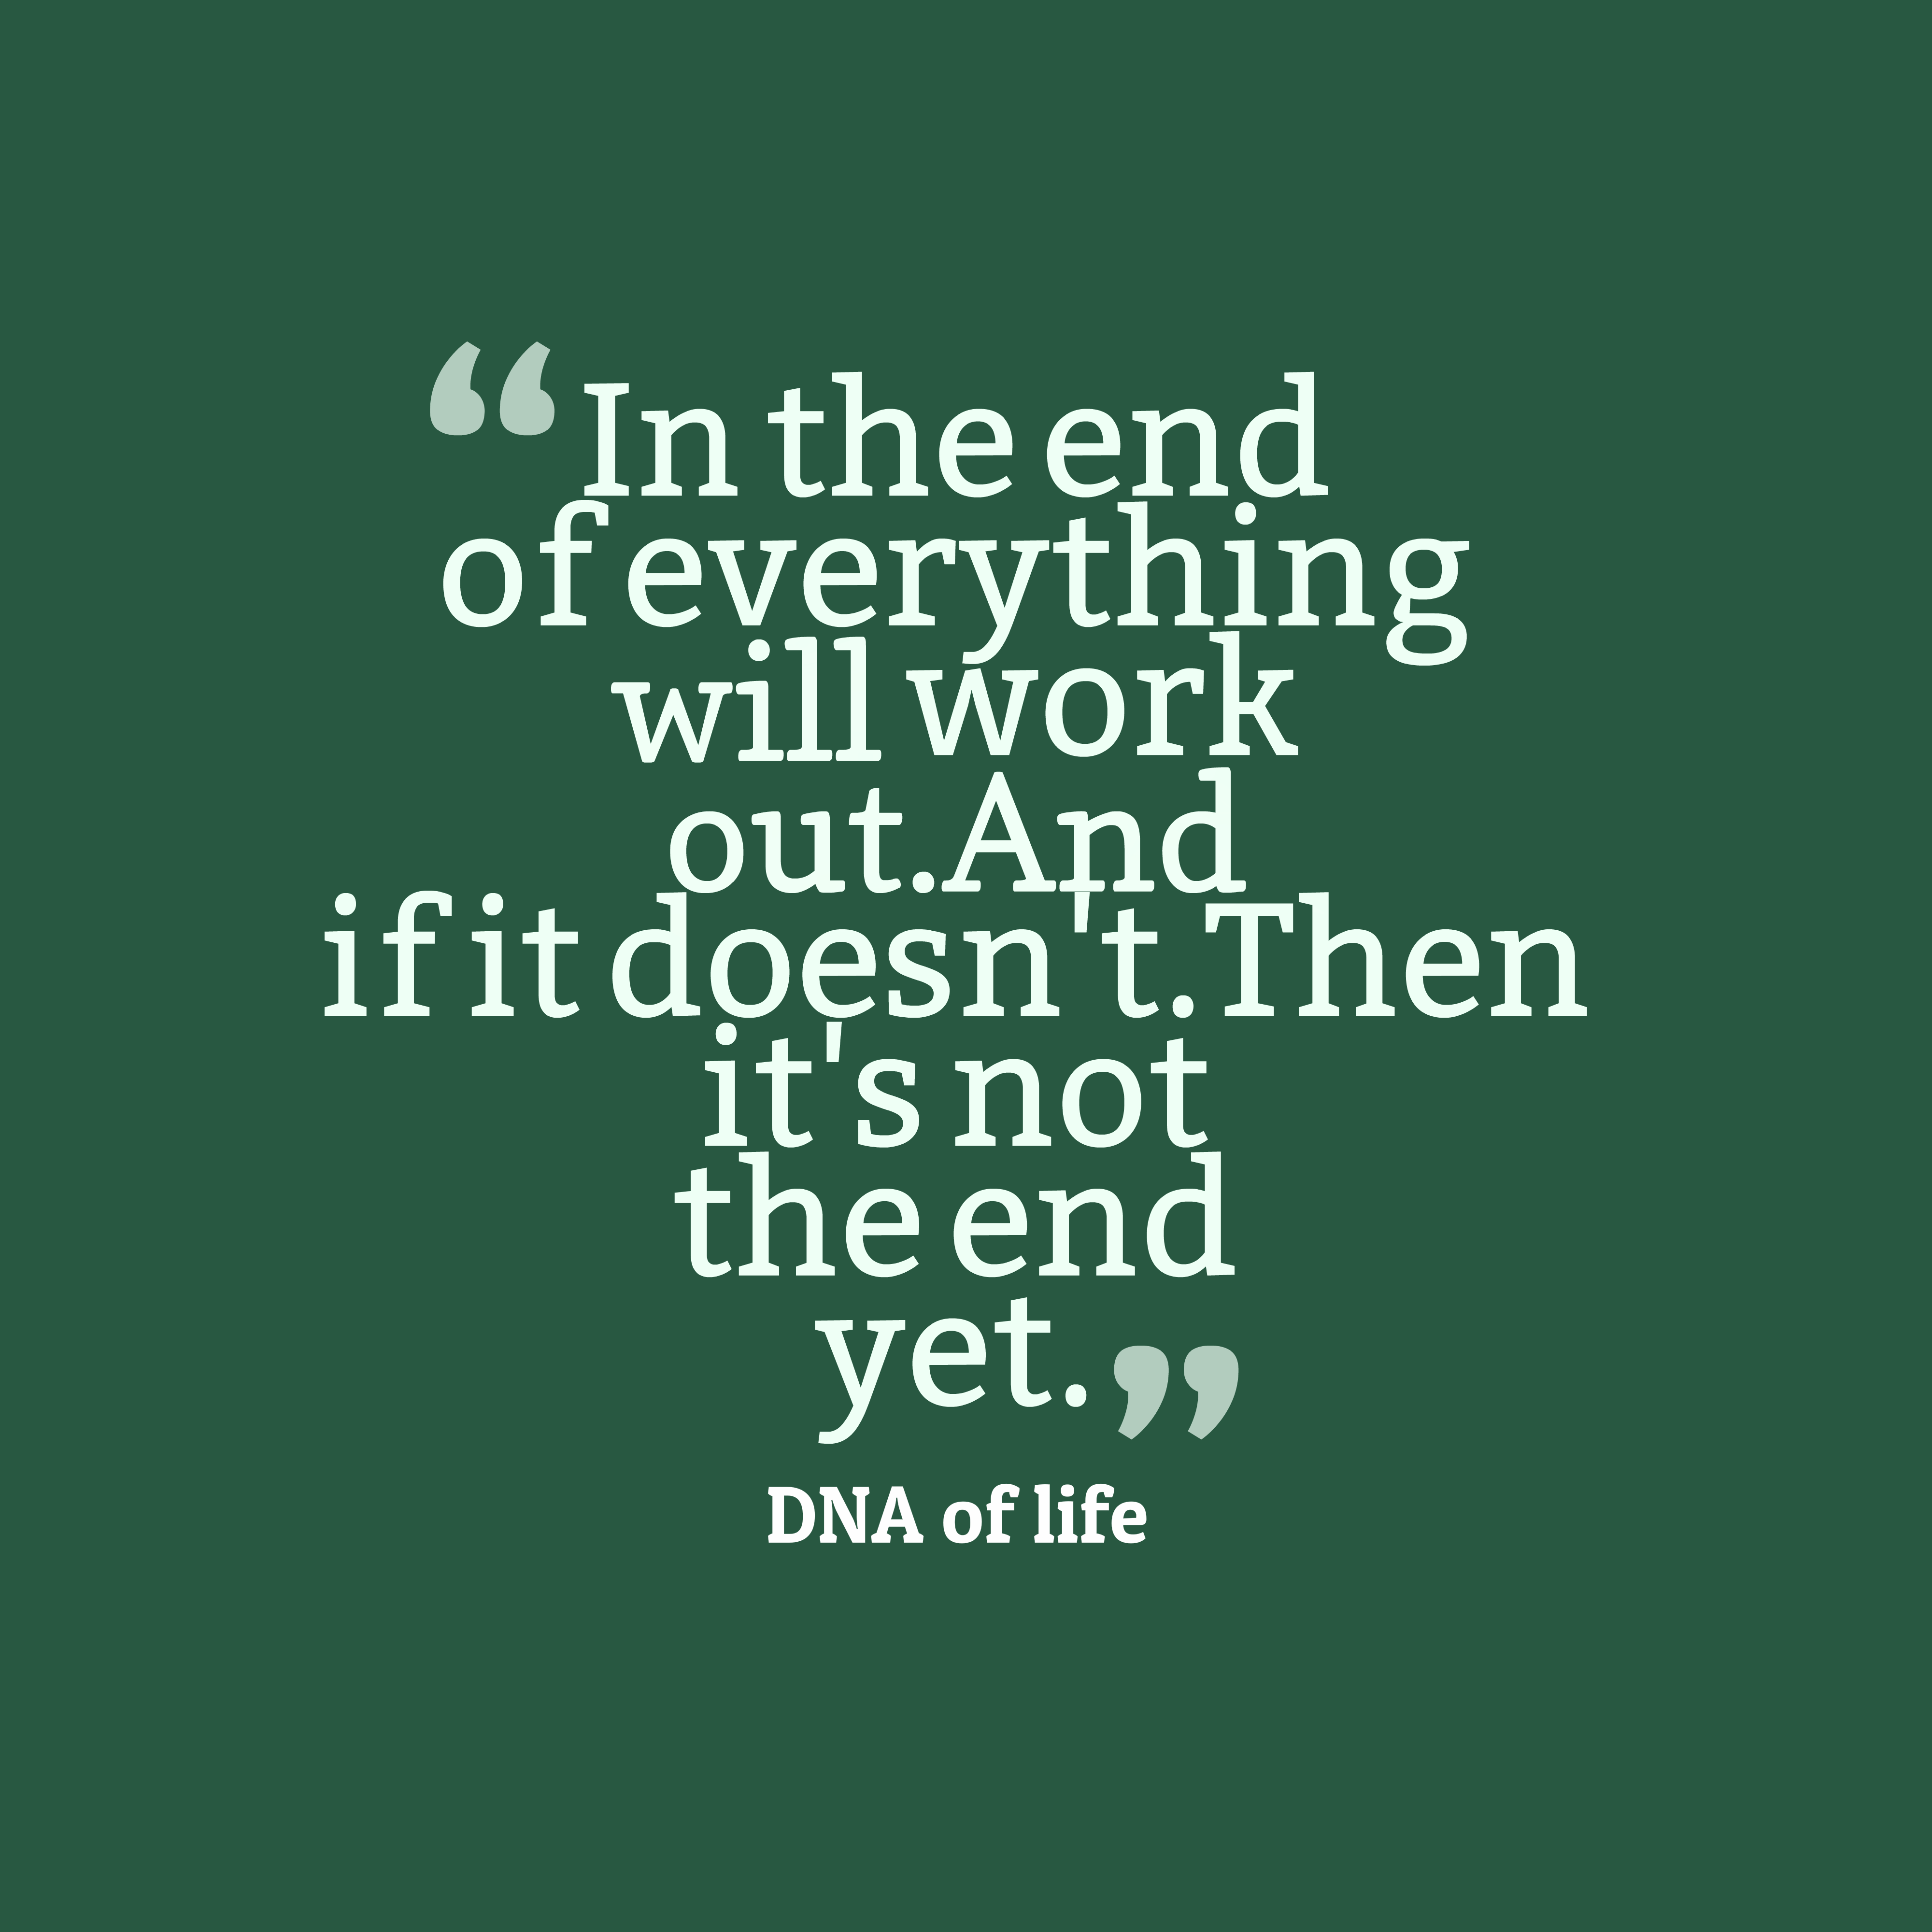 Quotes image of In the end of everything will work out.